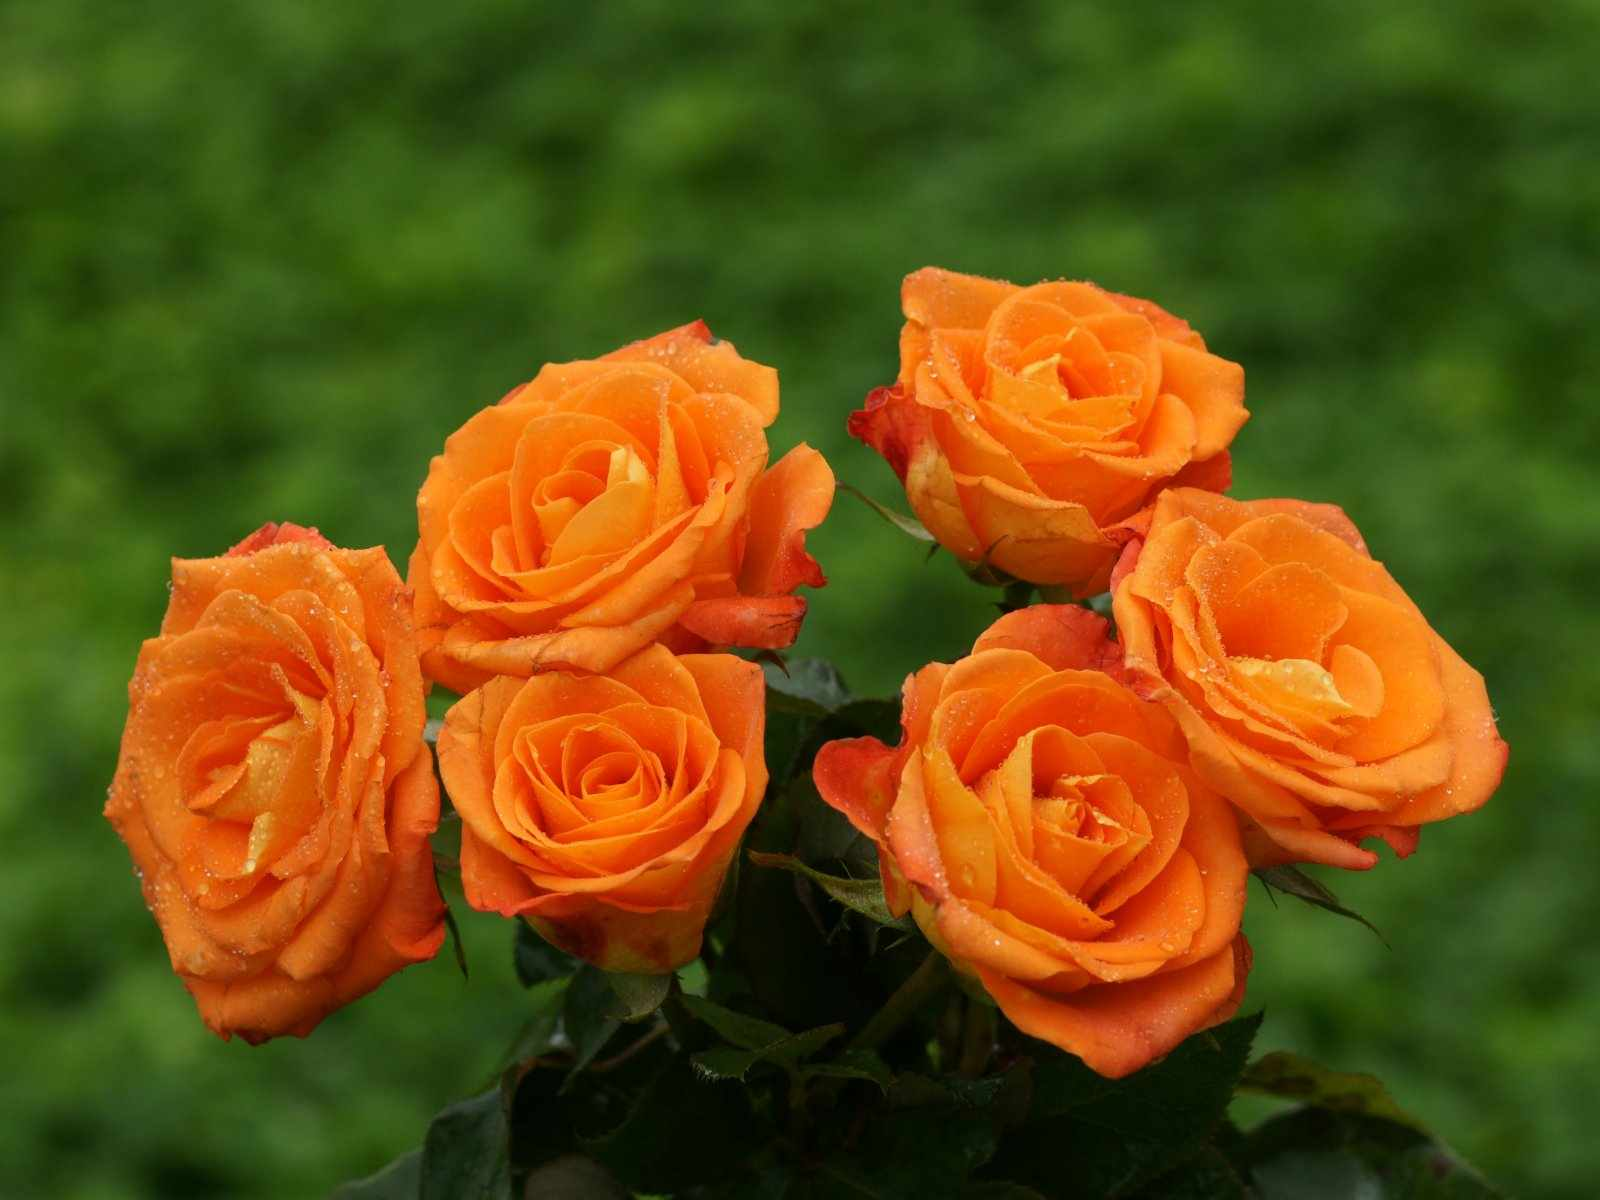 Flower Photos: Orange Roses Only